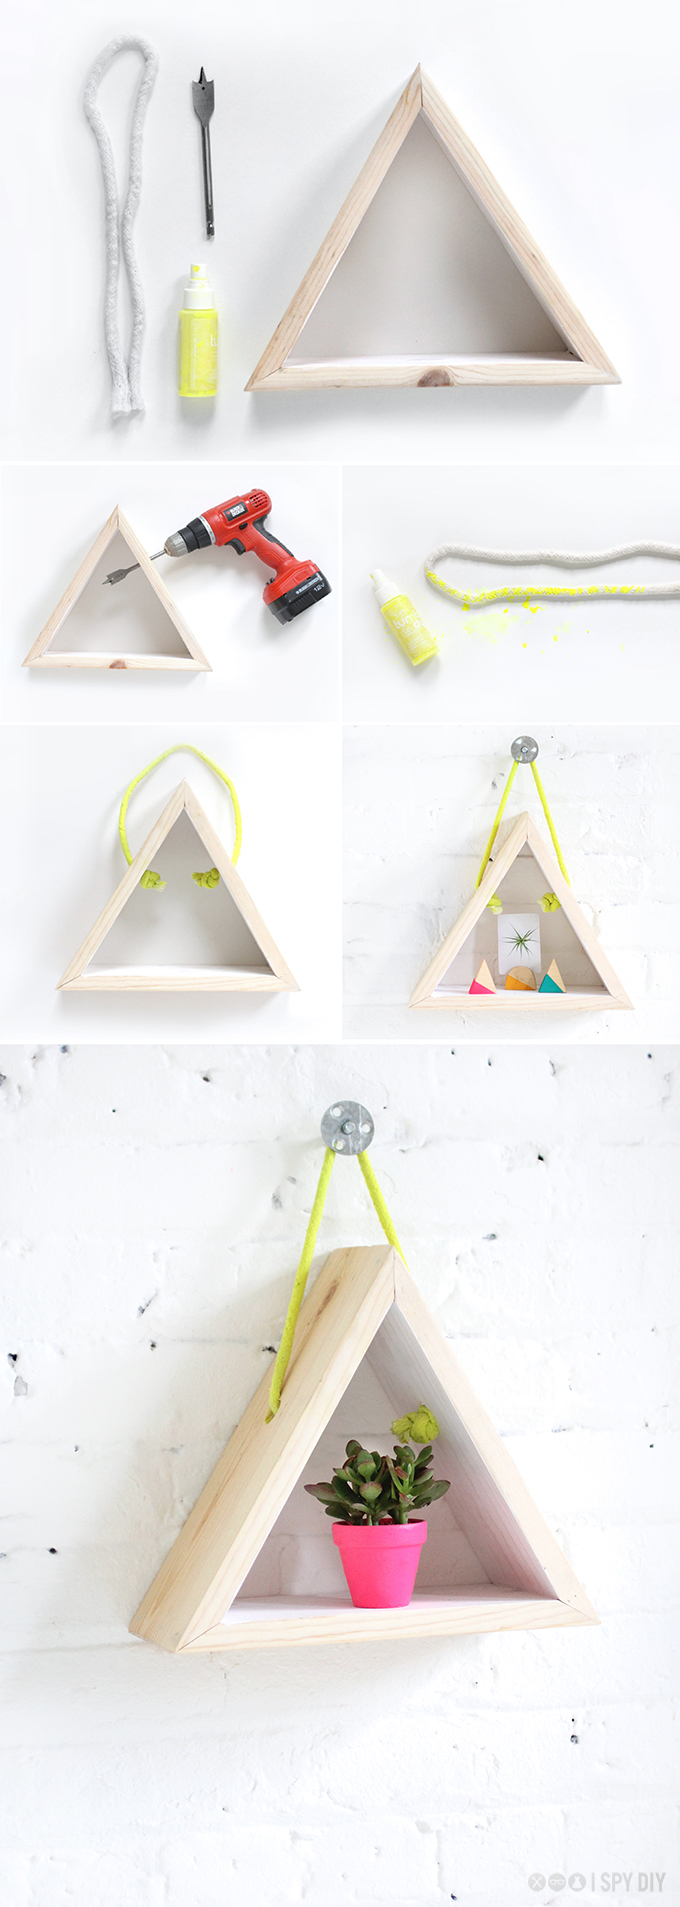 ispdiy_triangleshelf_steps